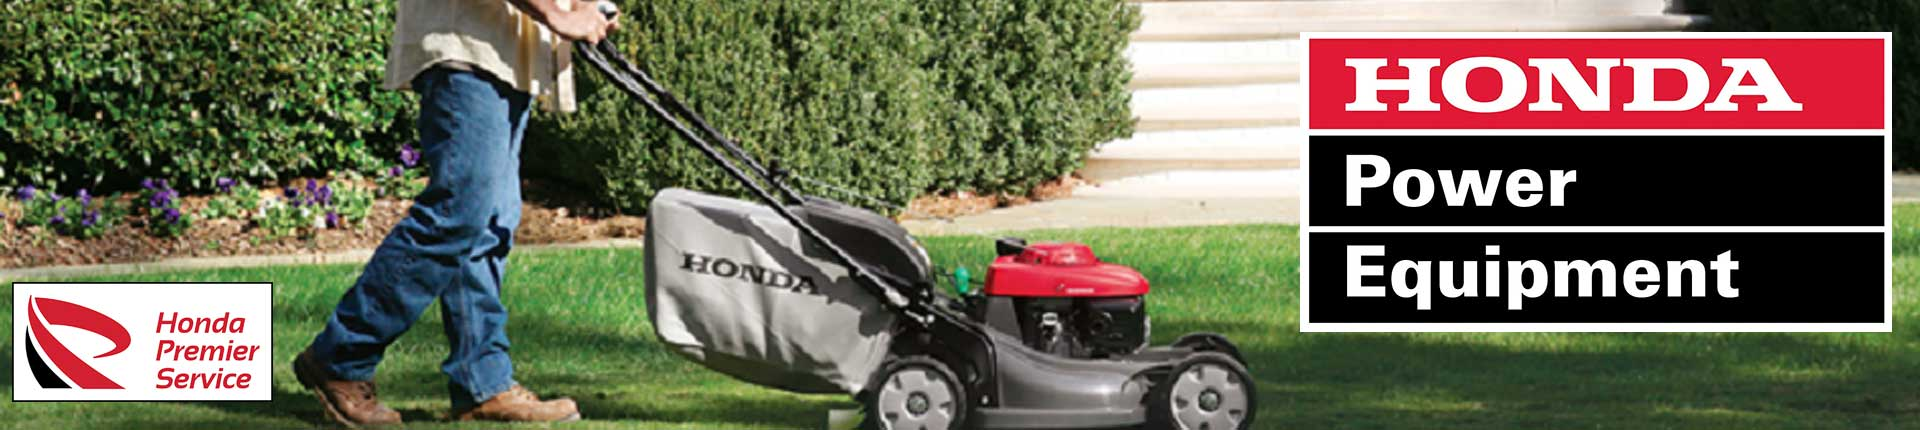 Honda equipment sales in the Western Chicago Suburbs